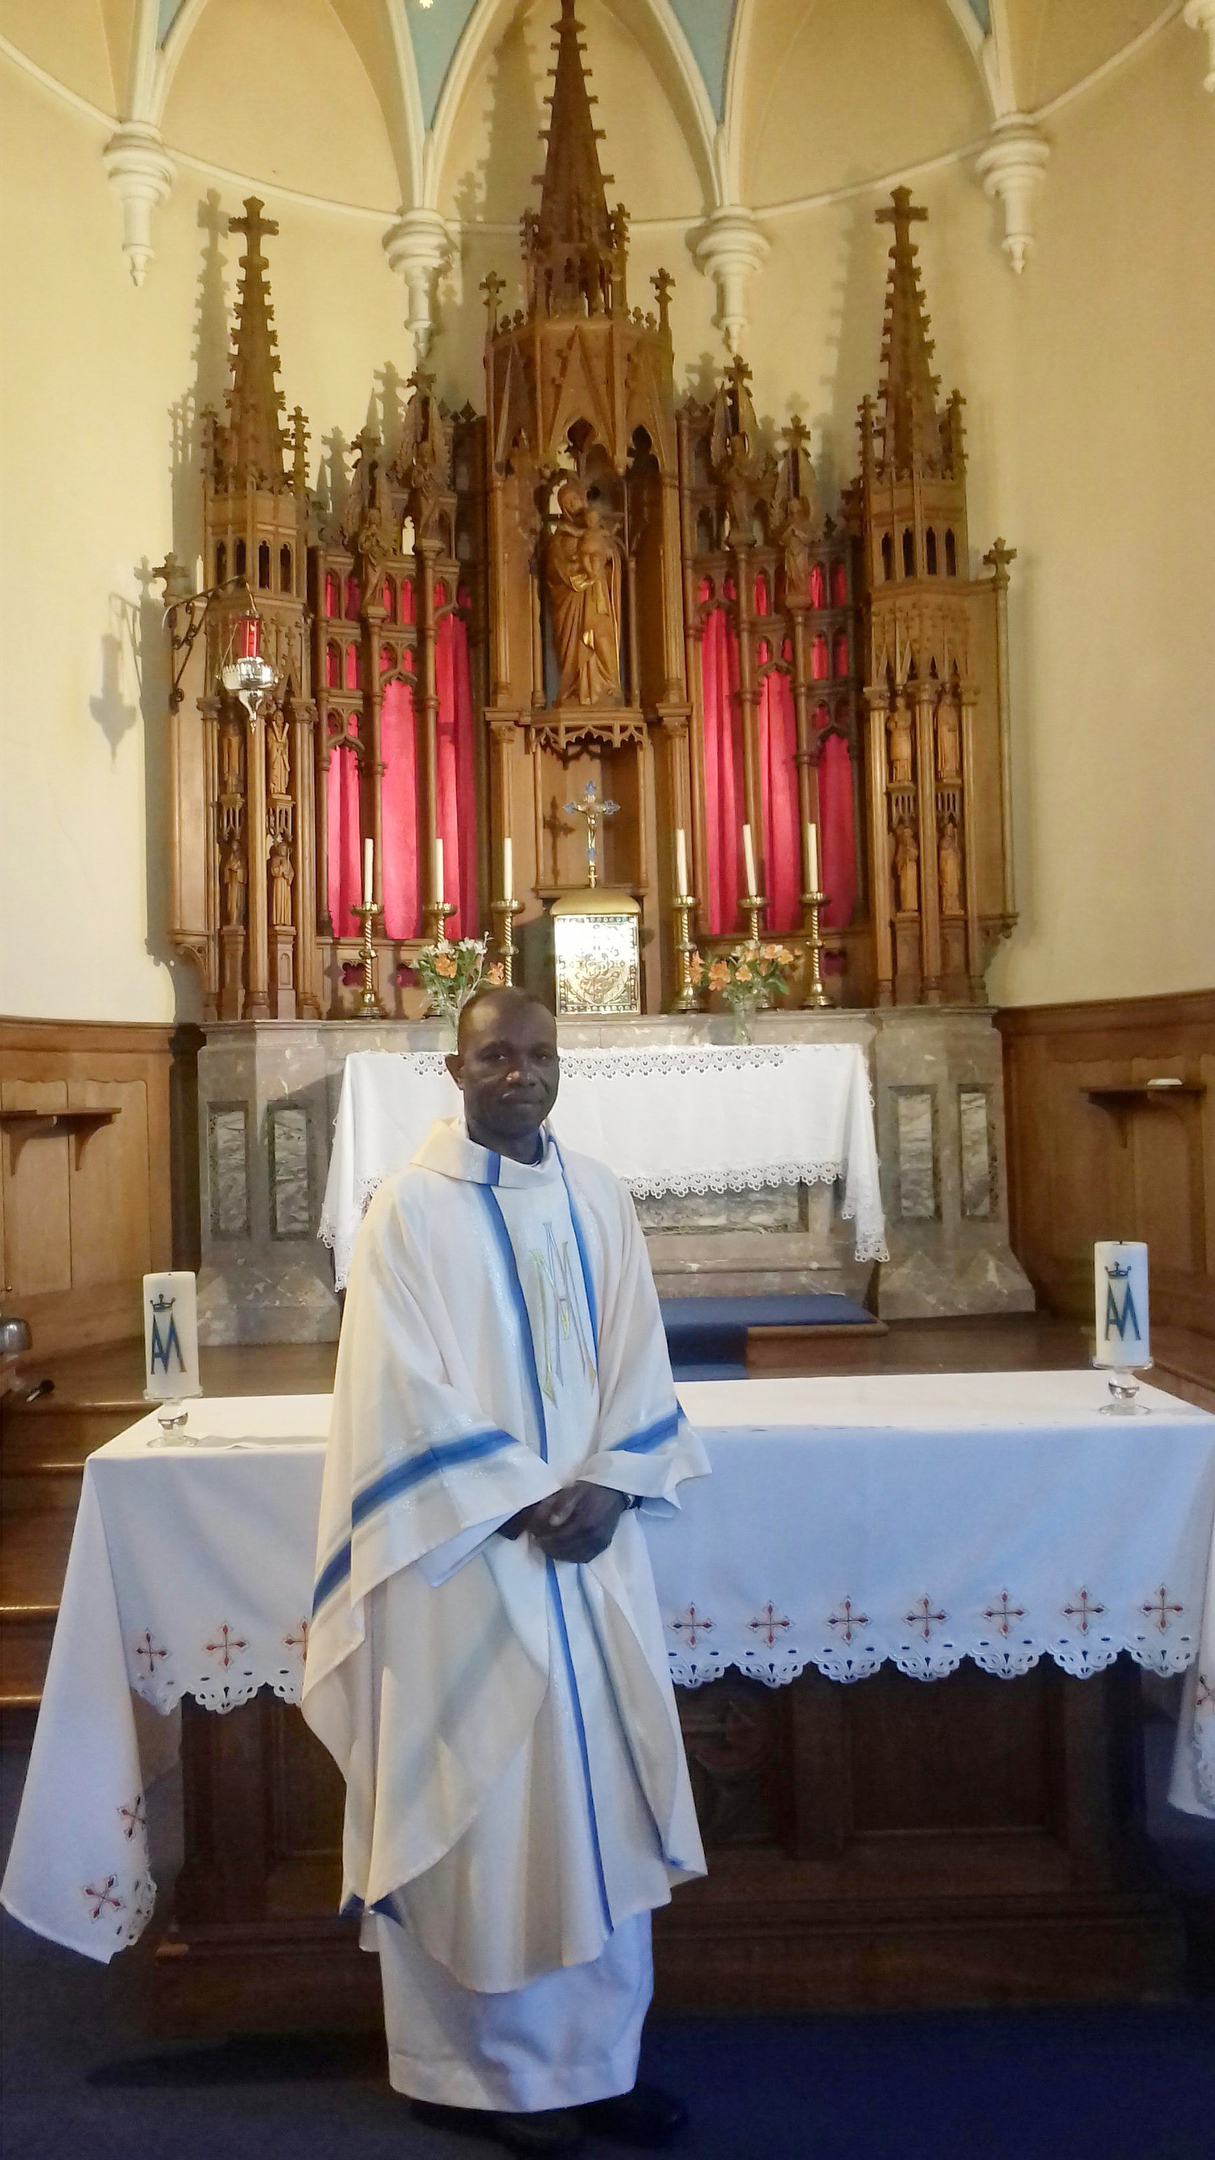 Fr. Francis Okoro has been appointed priest-in-charge of the parish of Our Lady of Mount Carmel (OLMC), Sandyhill Road,  in Banff.